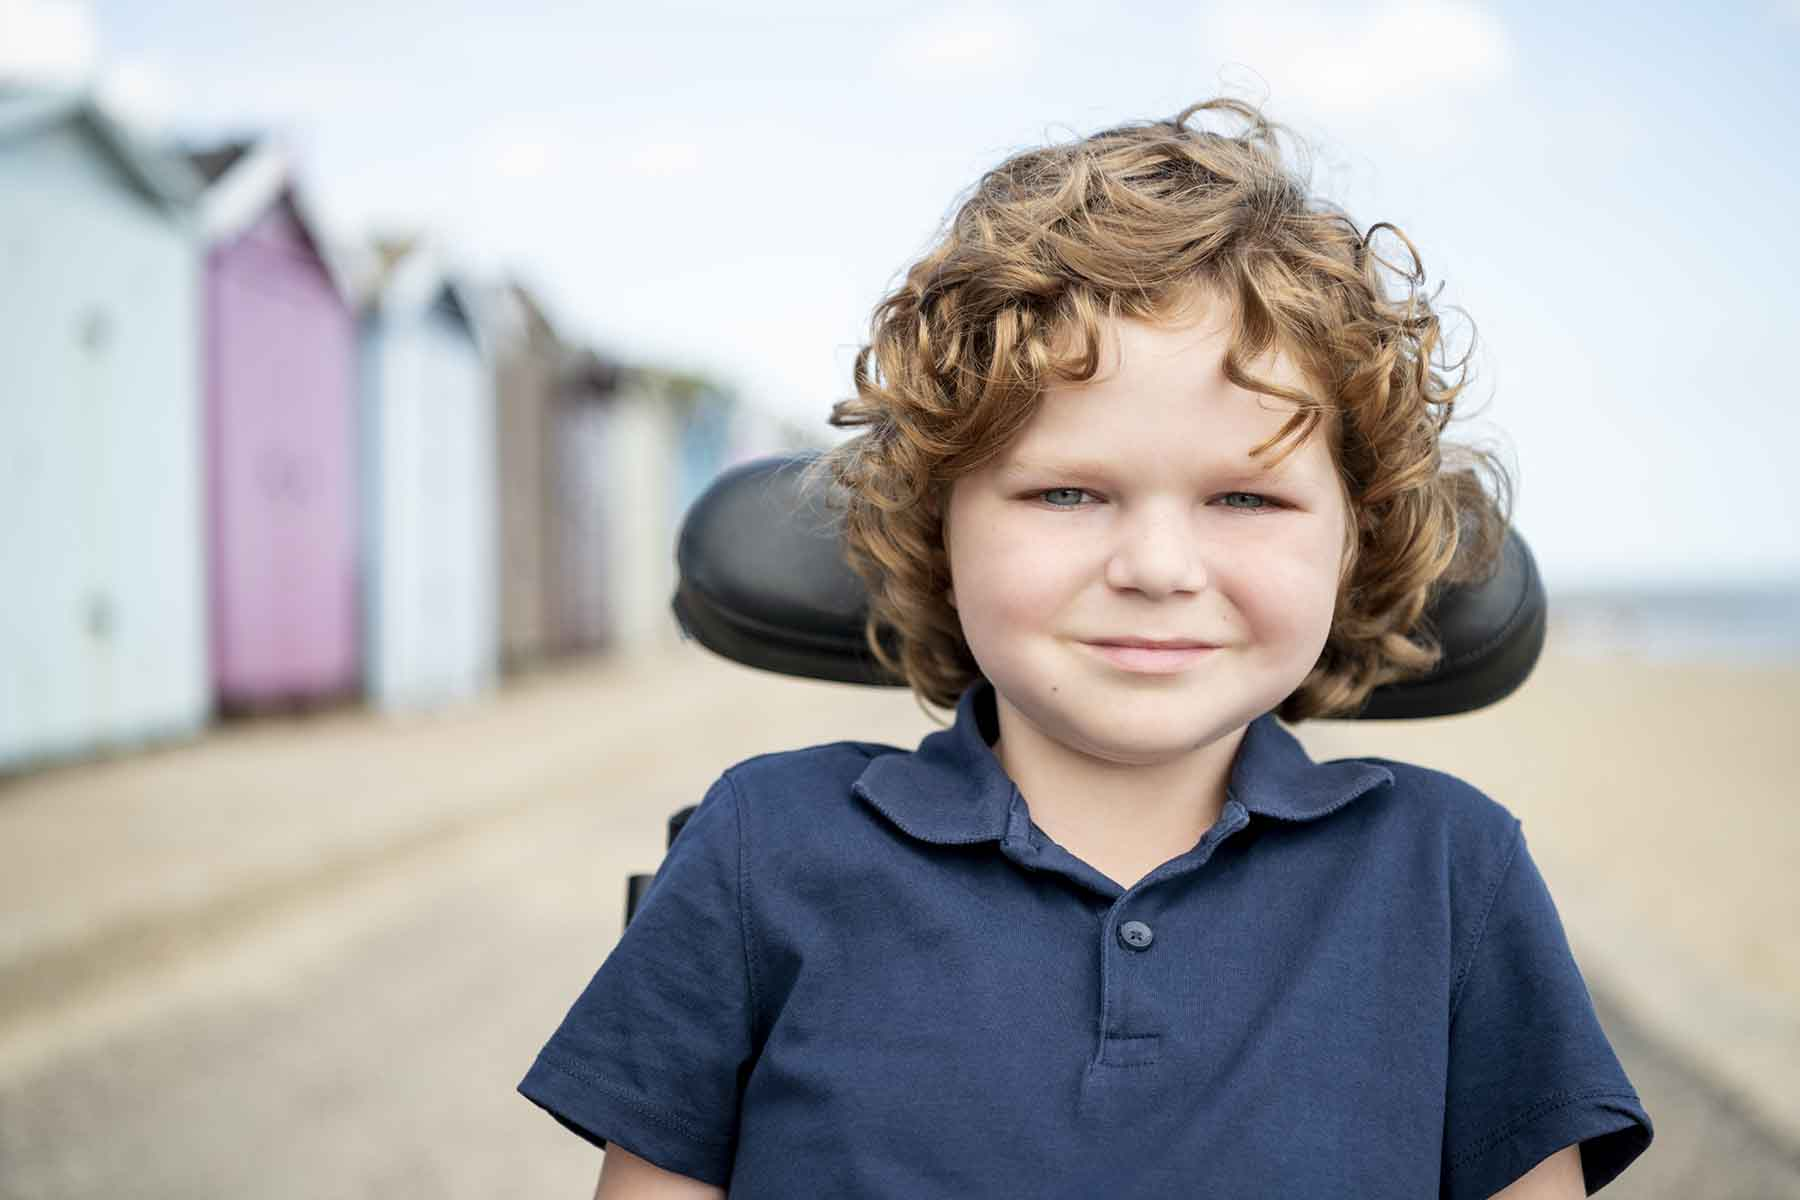 Cute young boy with wavy hair at the beach in his wheelchair